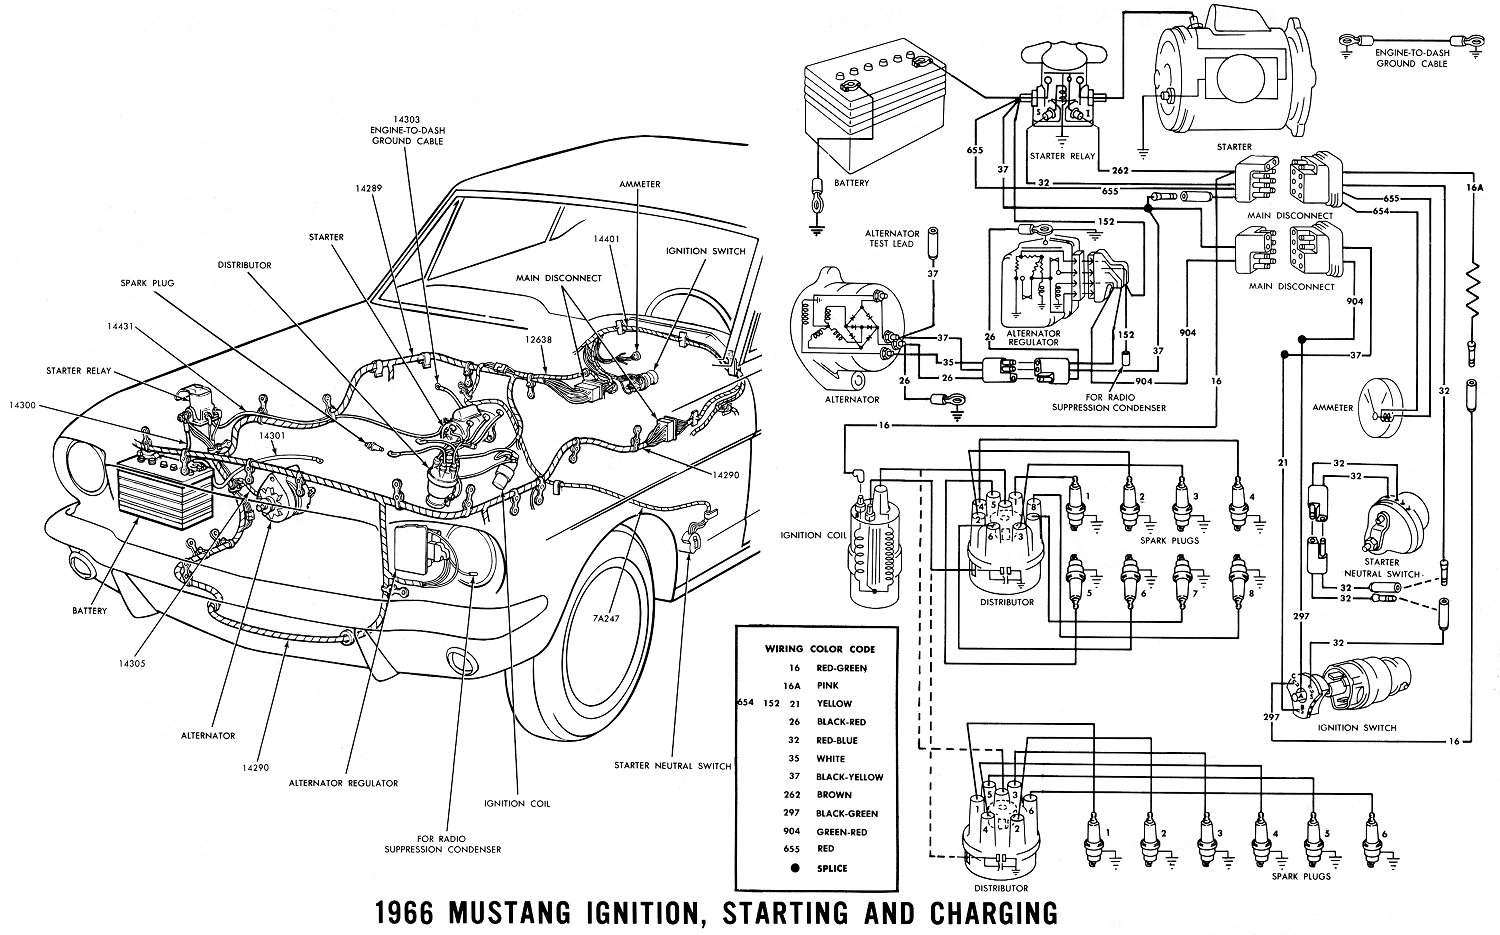 66ignit 1966 mustang wiring diagrams average joe restoration 67 mustang dash wiring diagram at virtualis.co